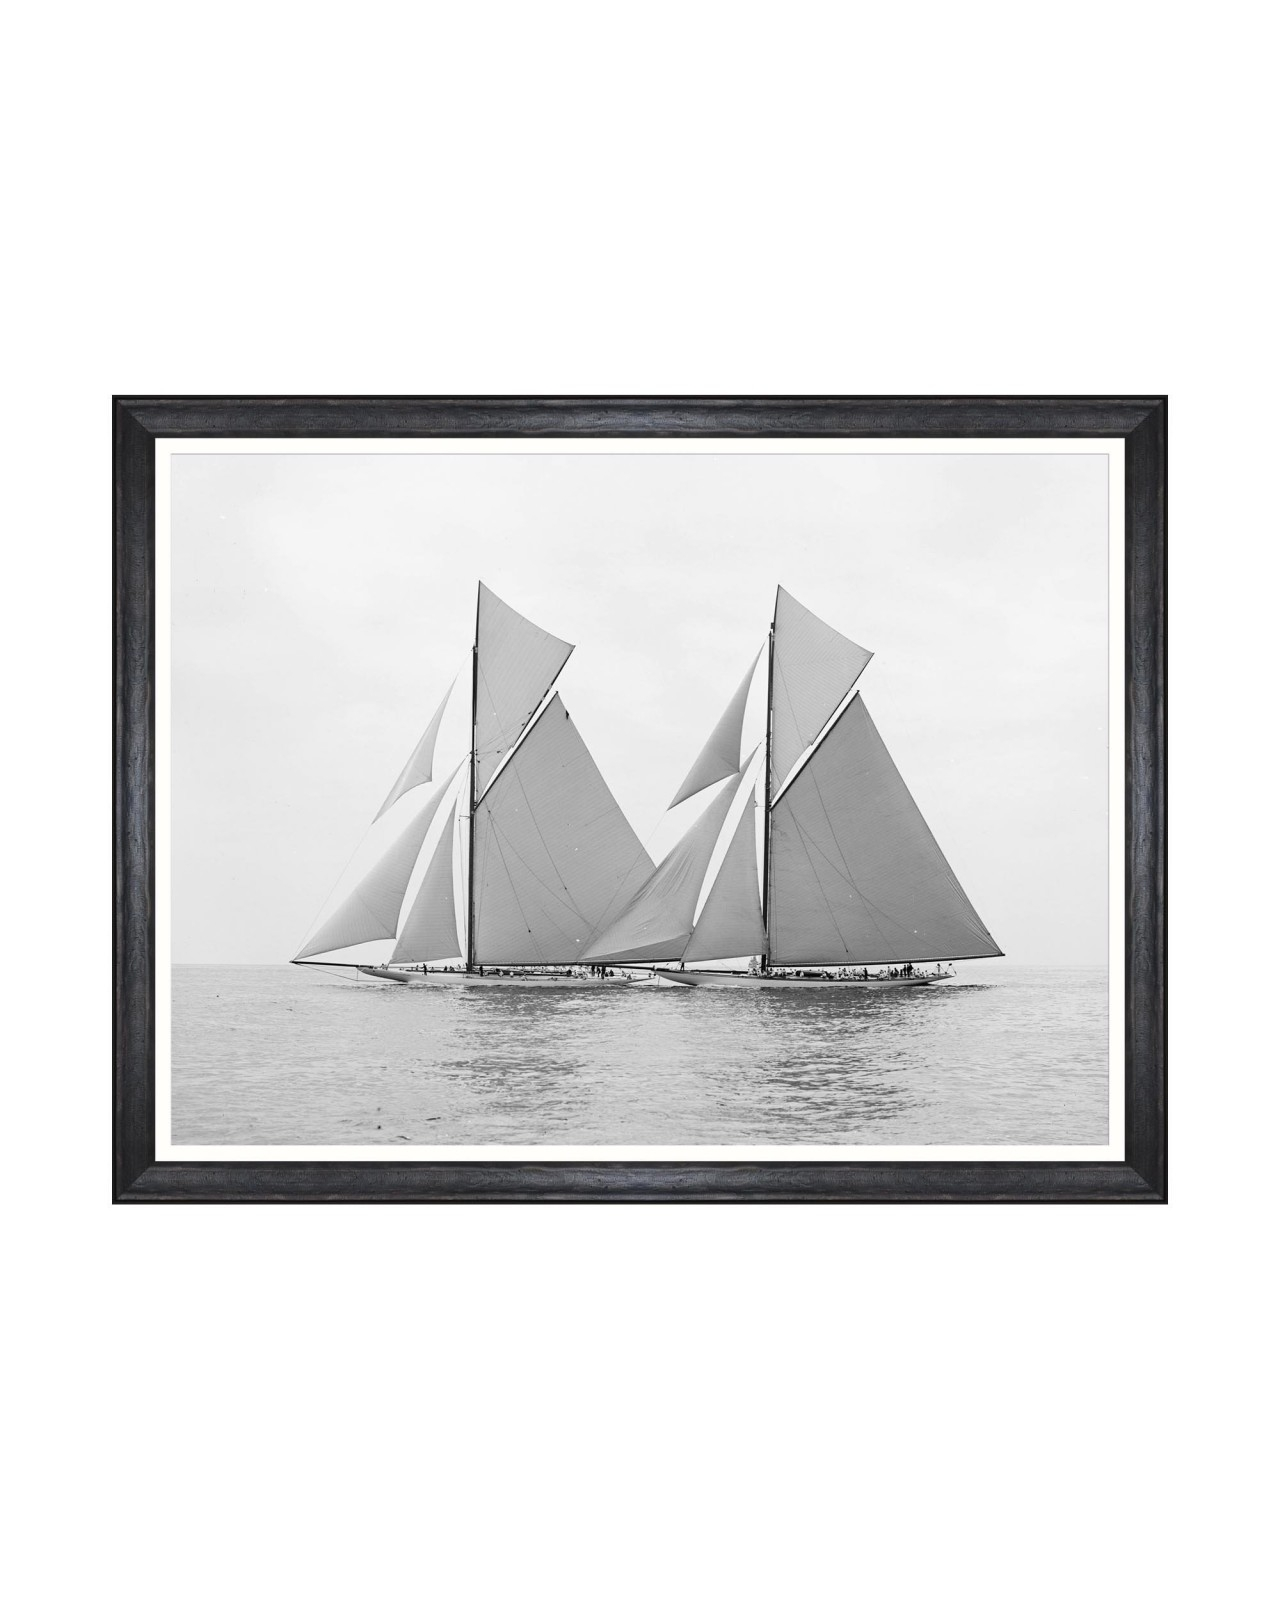 Tablou Framed Art America's Cup - Reliance And Shamrock 1903, 80 x 60 cm imagine